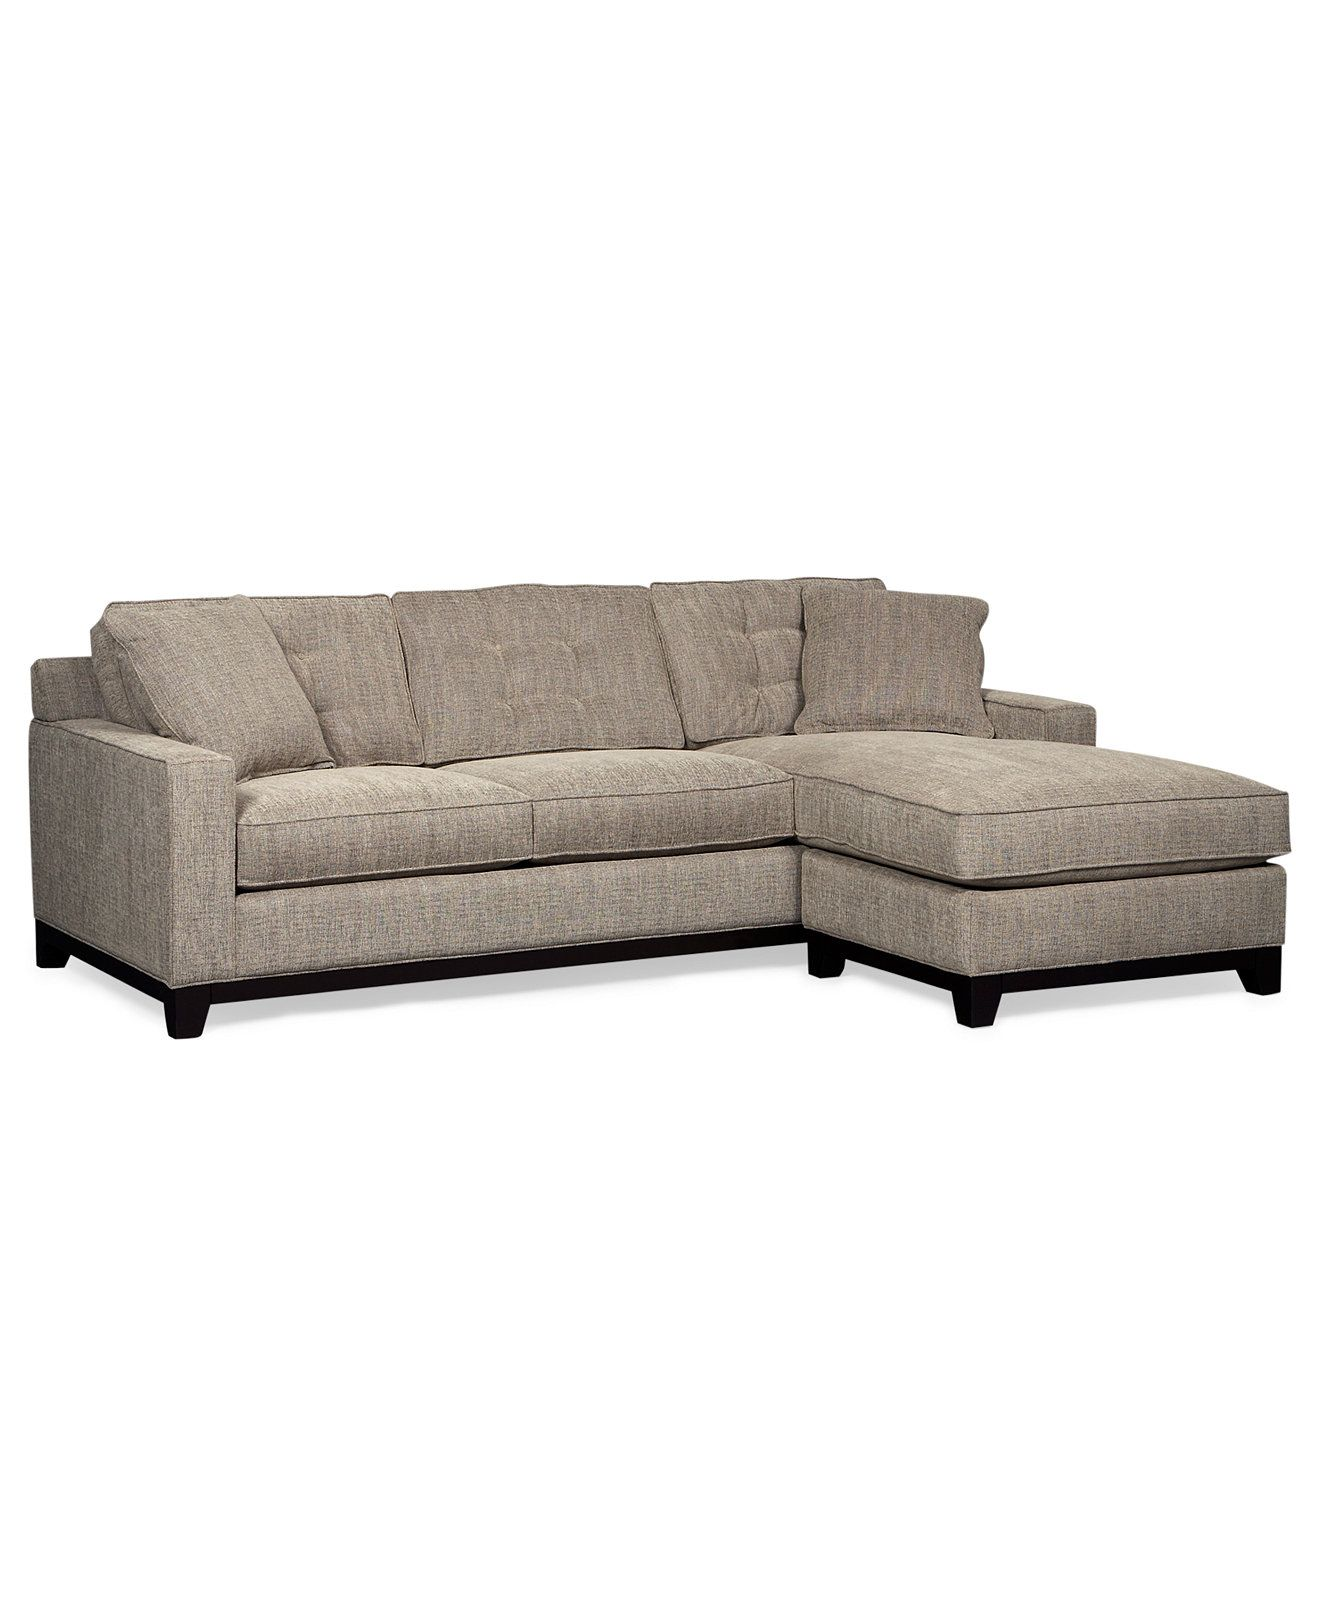 gray loveseat bed chaise medium sectional lounge size bobs friheten with couches sofa sleeper houston charcoal of